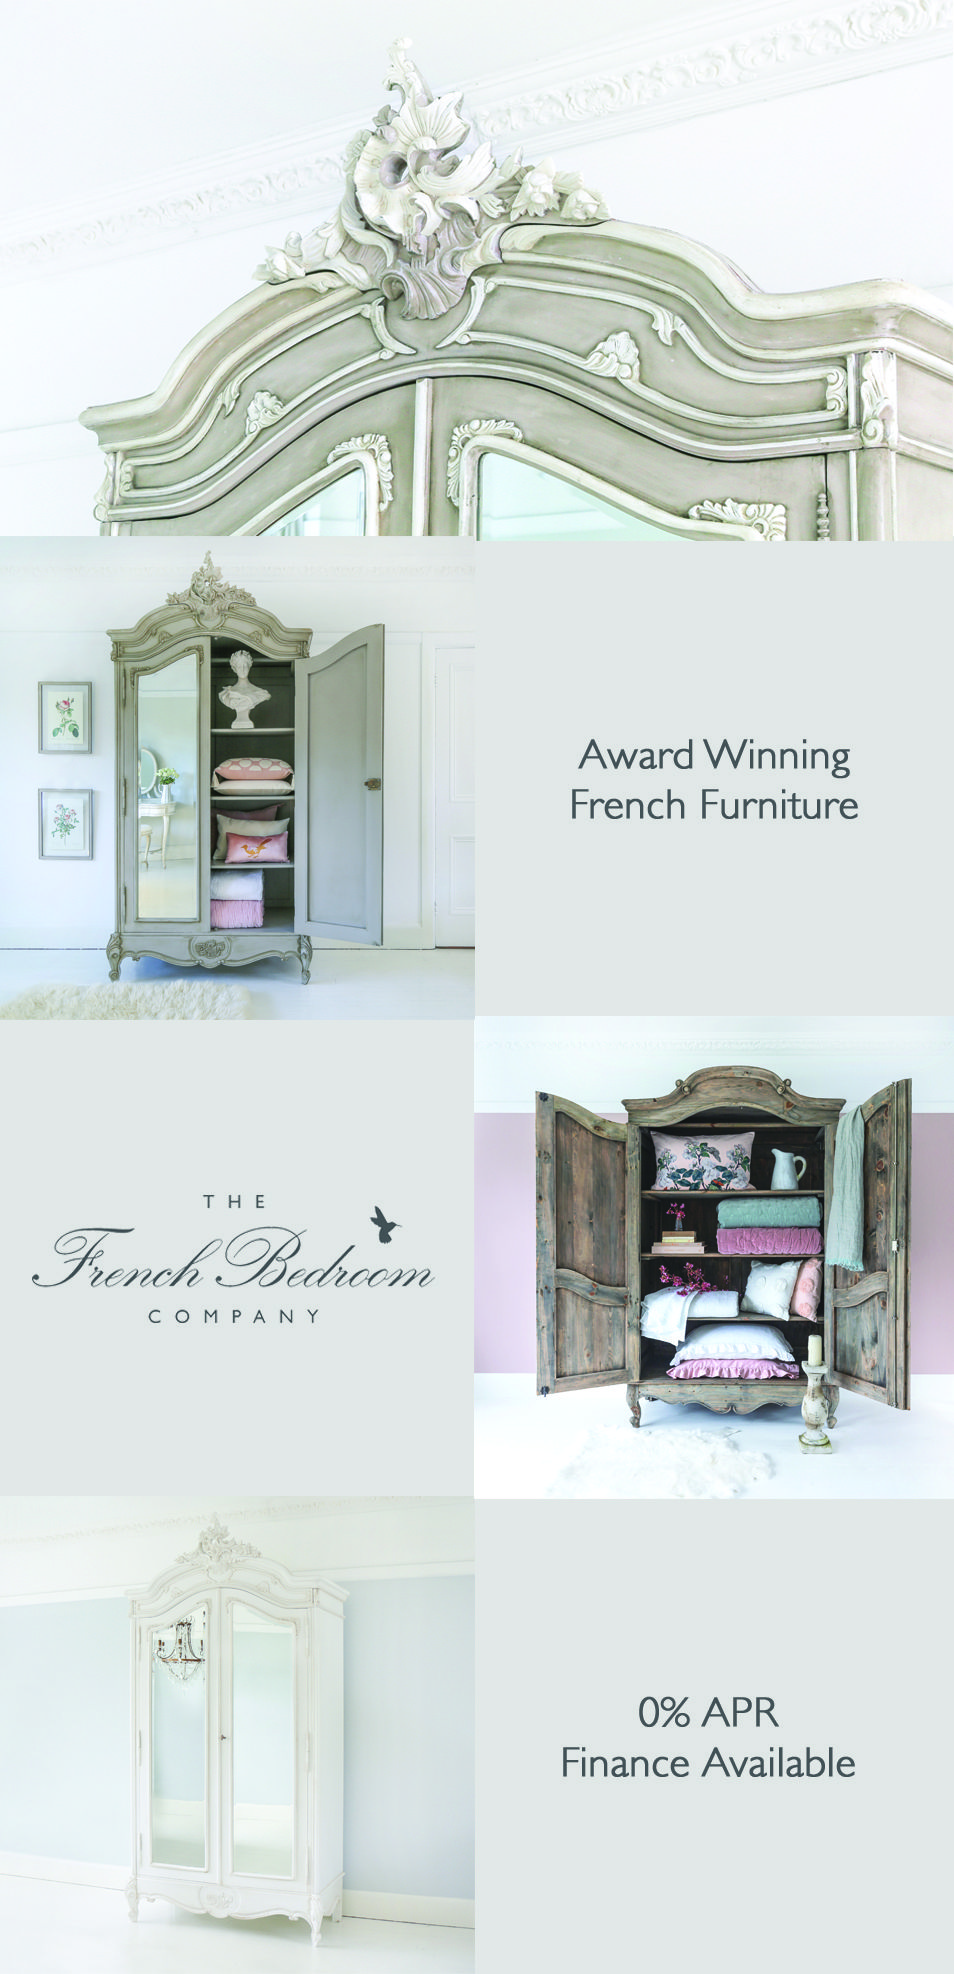 Pin by The French Bedroom Company on French Bedroom